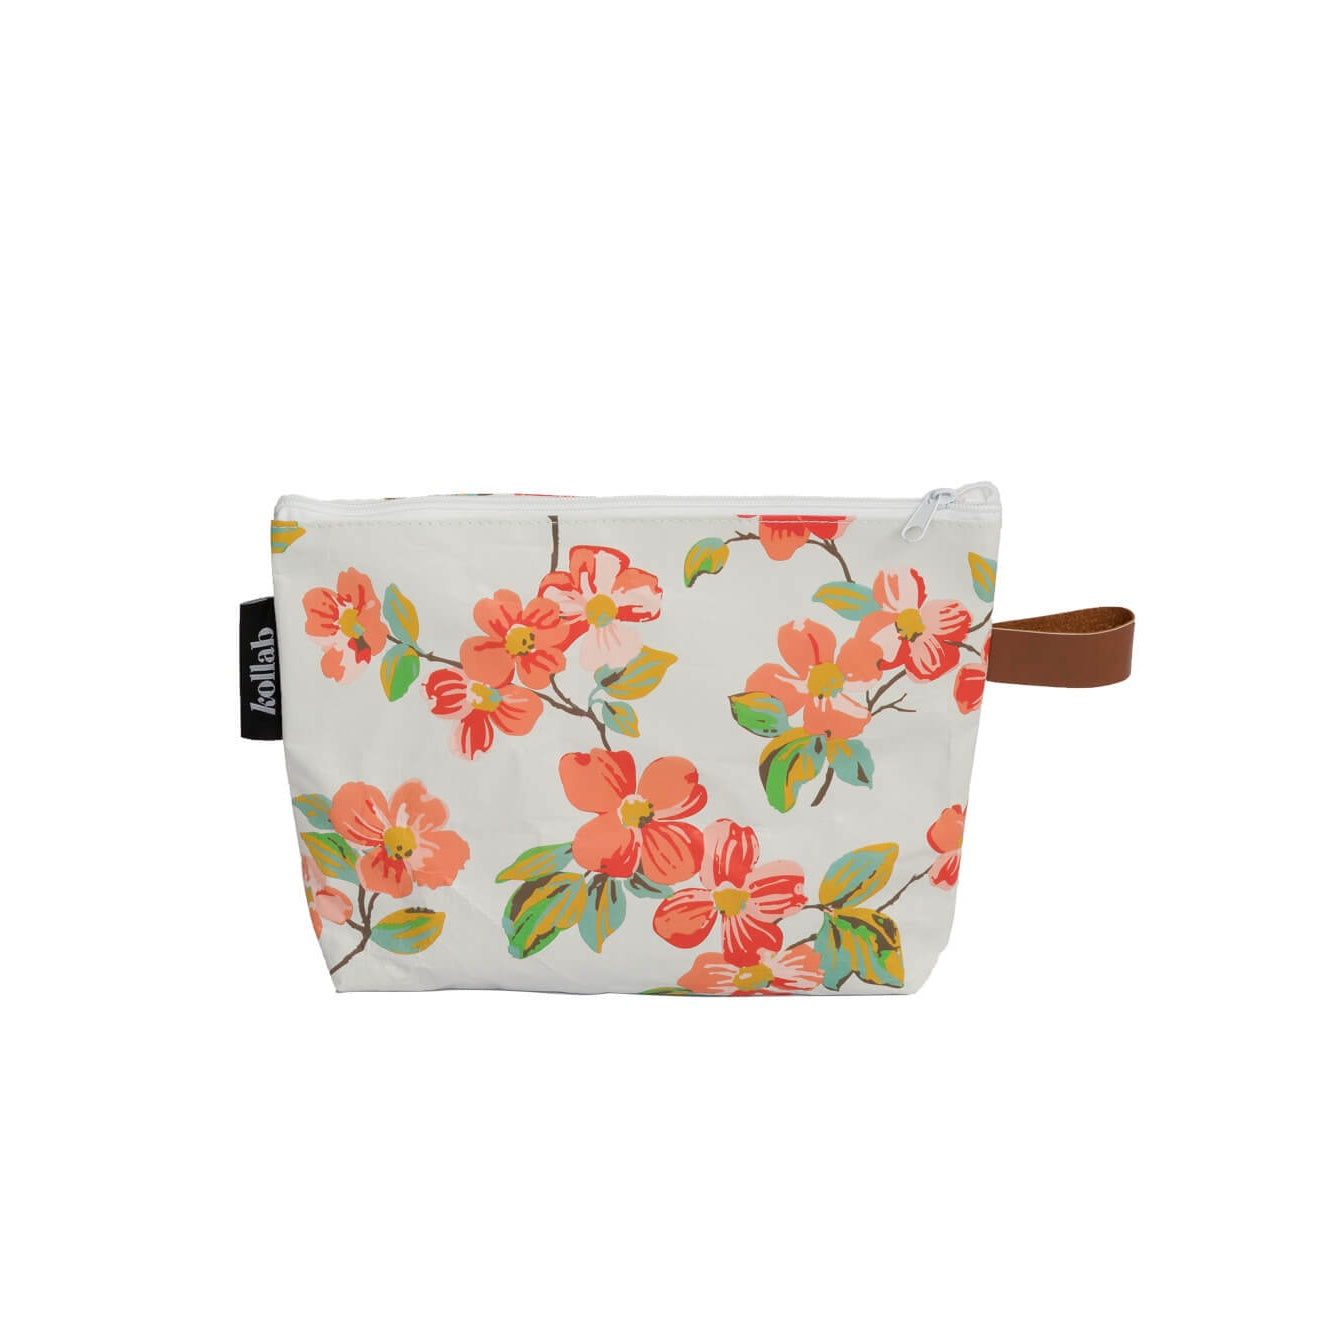 Kollab Society of wanderers Elma floral clutch | The Home Maven